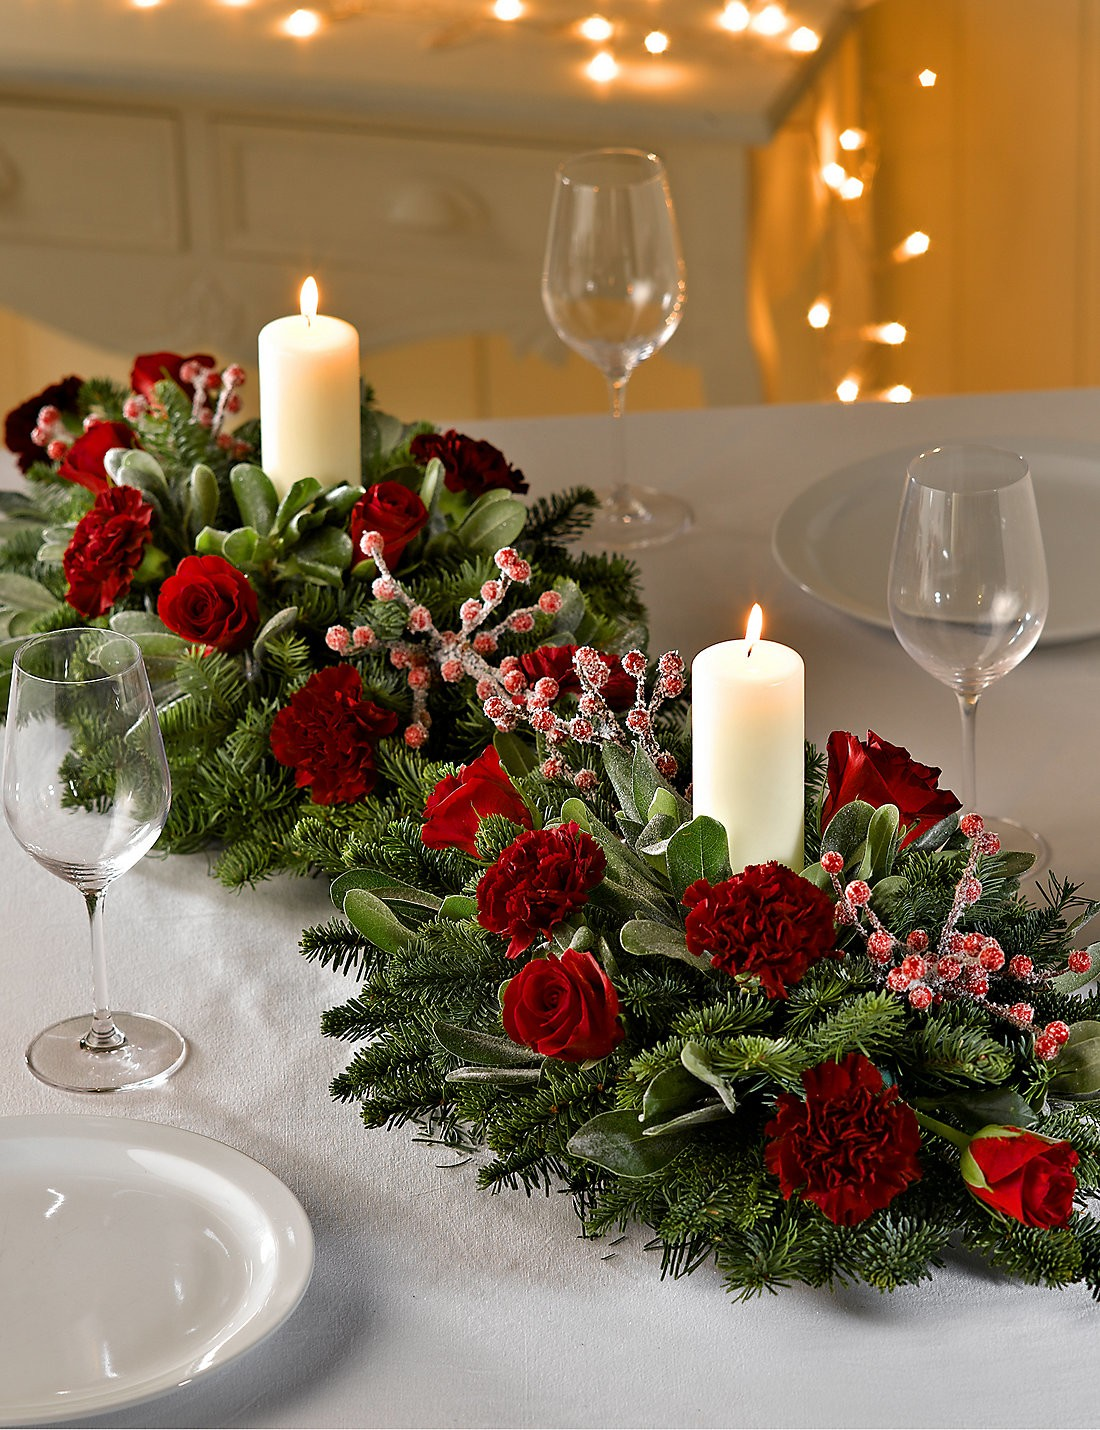 Christmas Table Centrepieces Designed by Phillo Flowers, UK